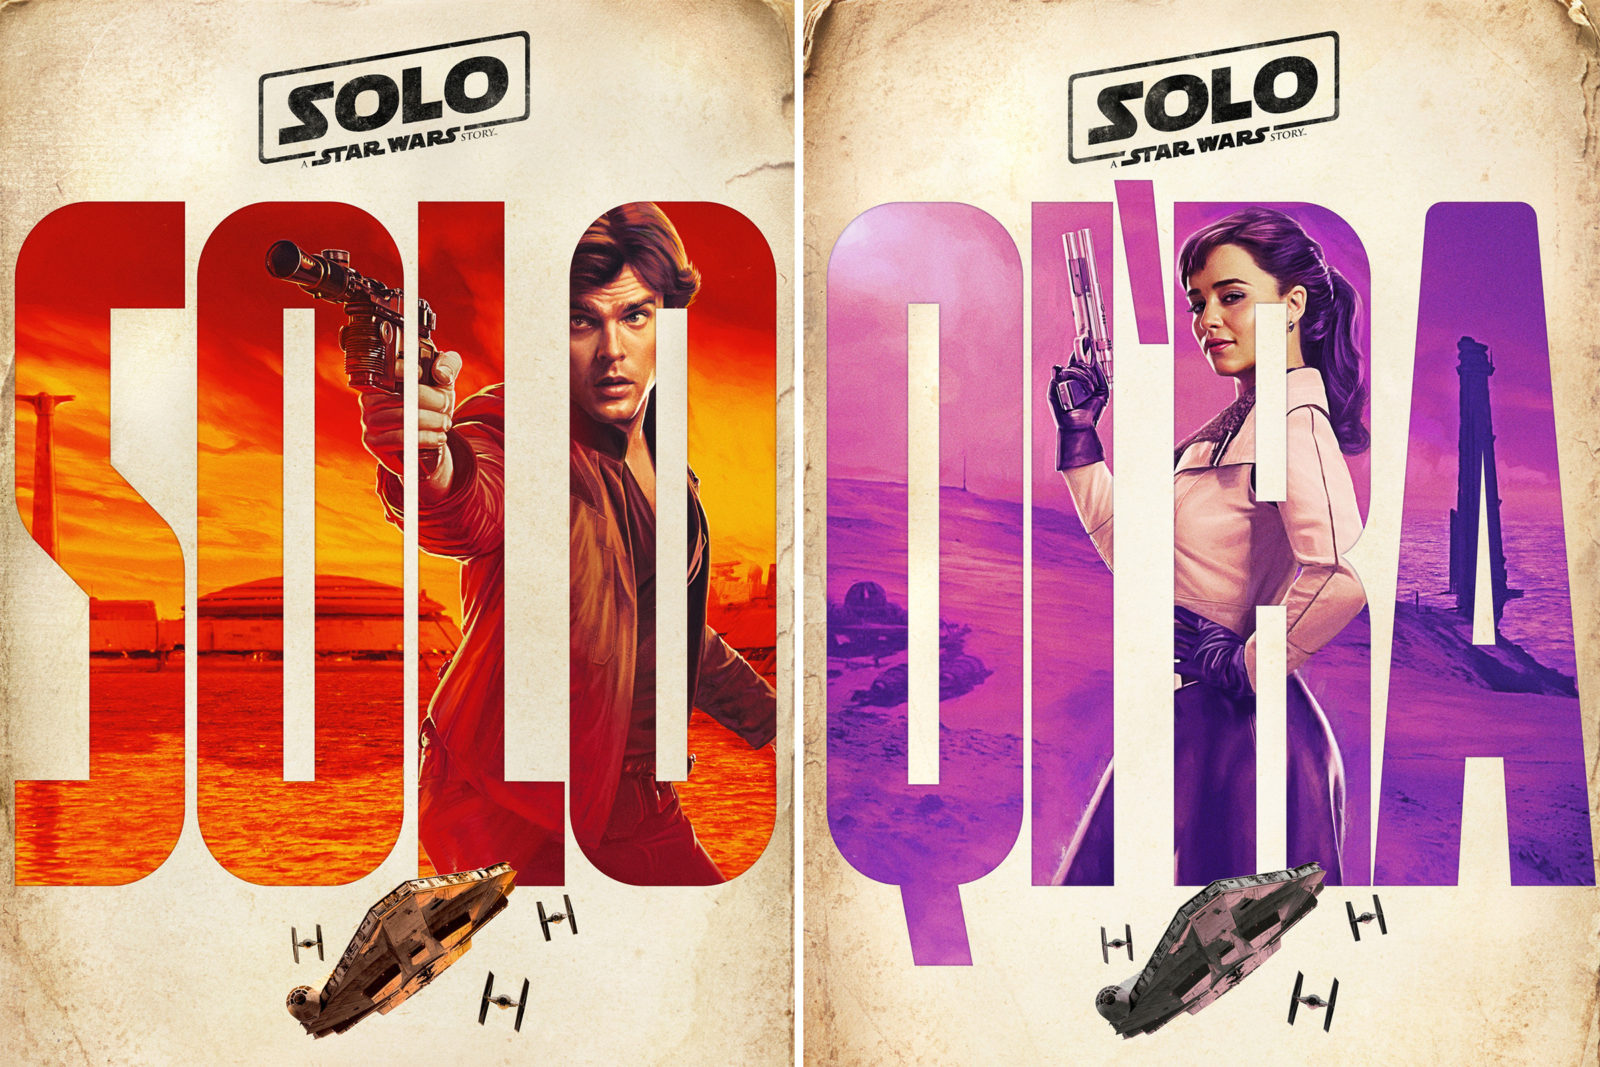 Full Teaser Trailer for Solo: A Star Wars Story